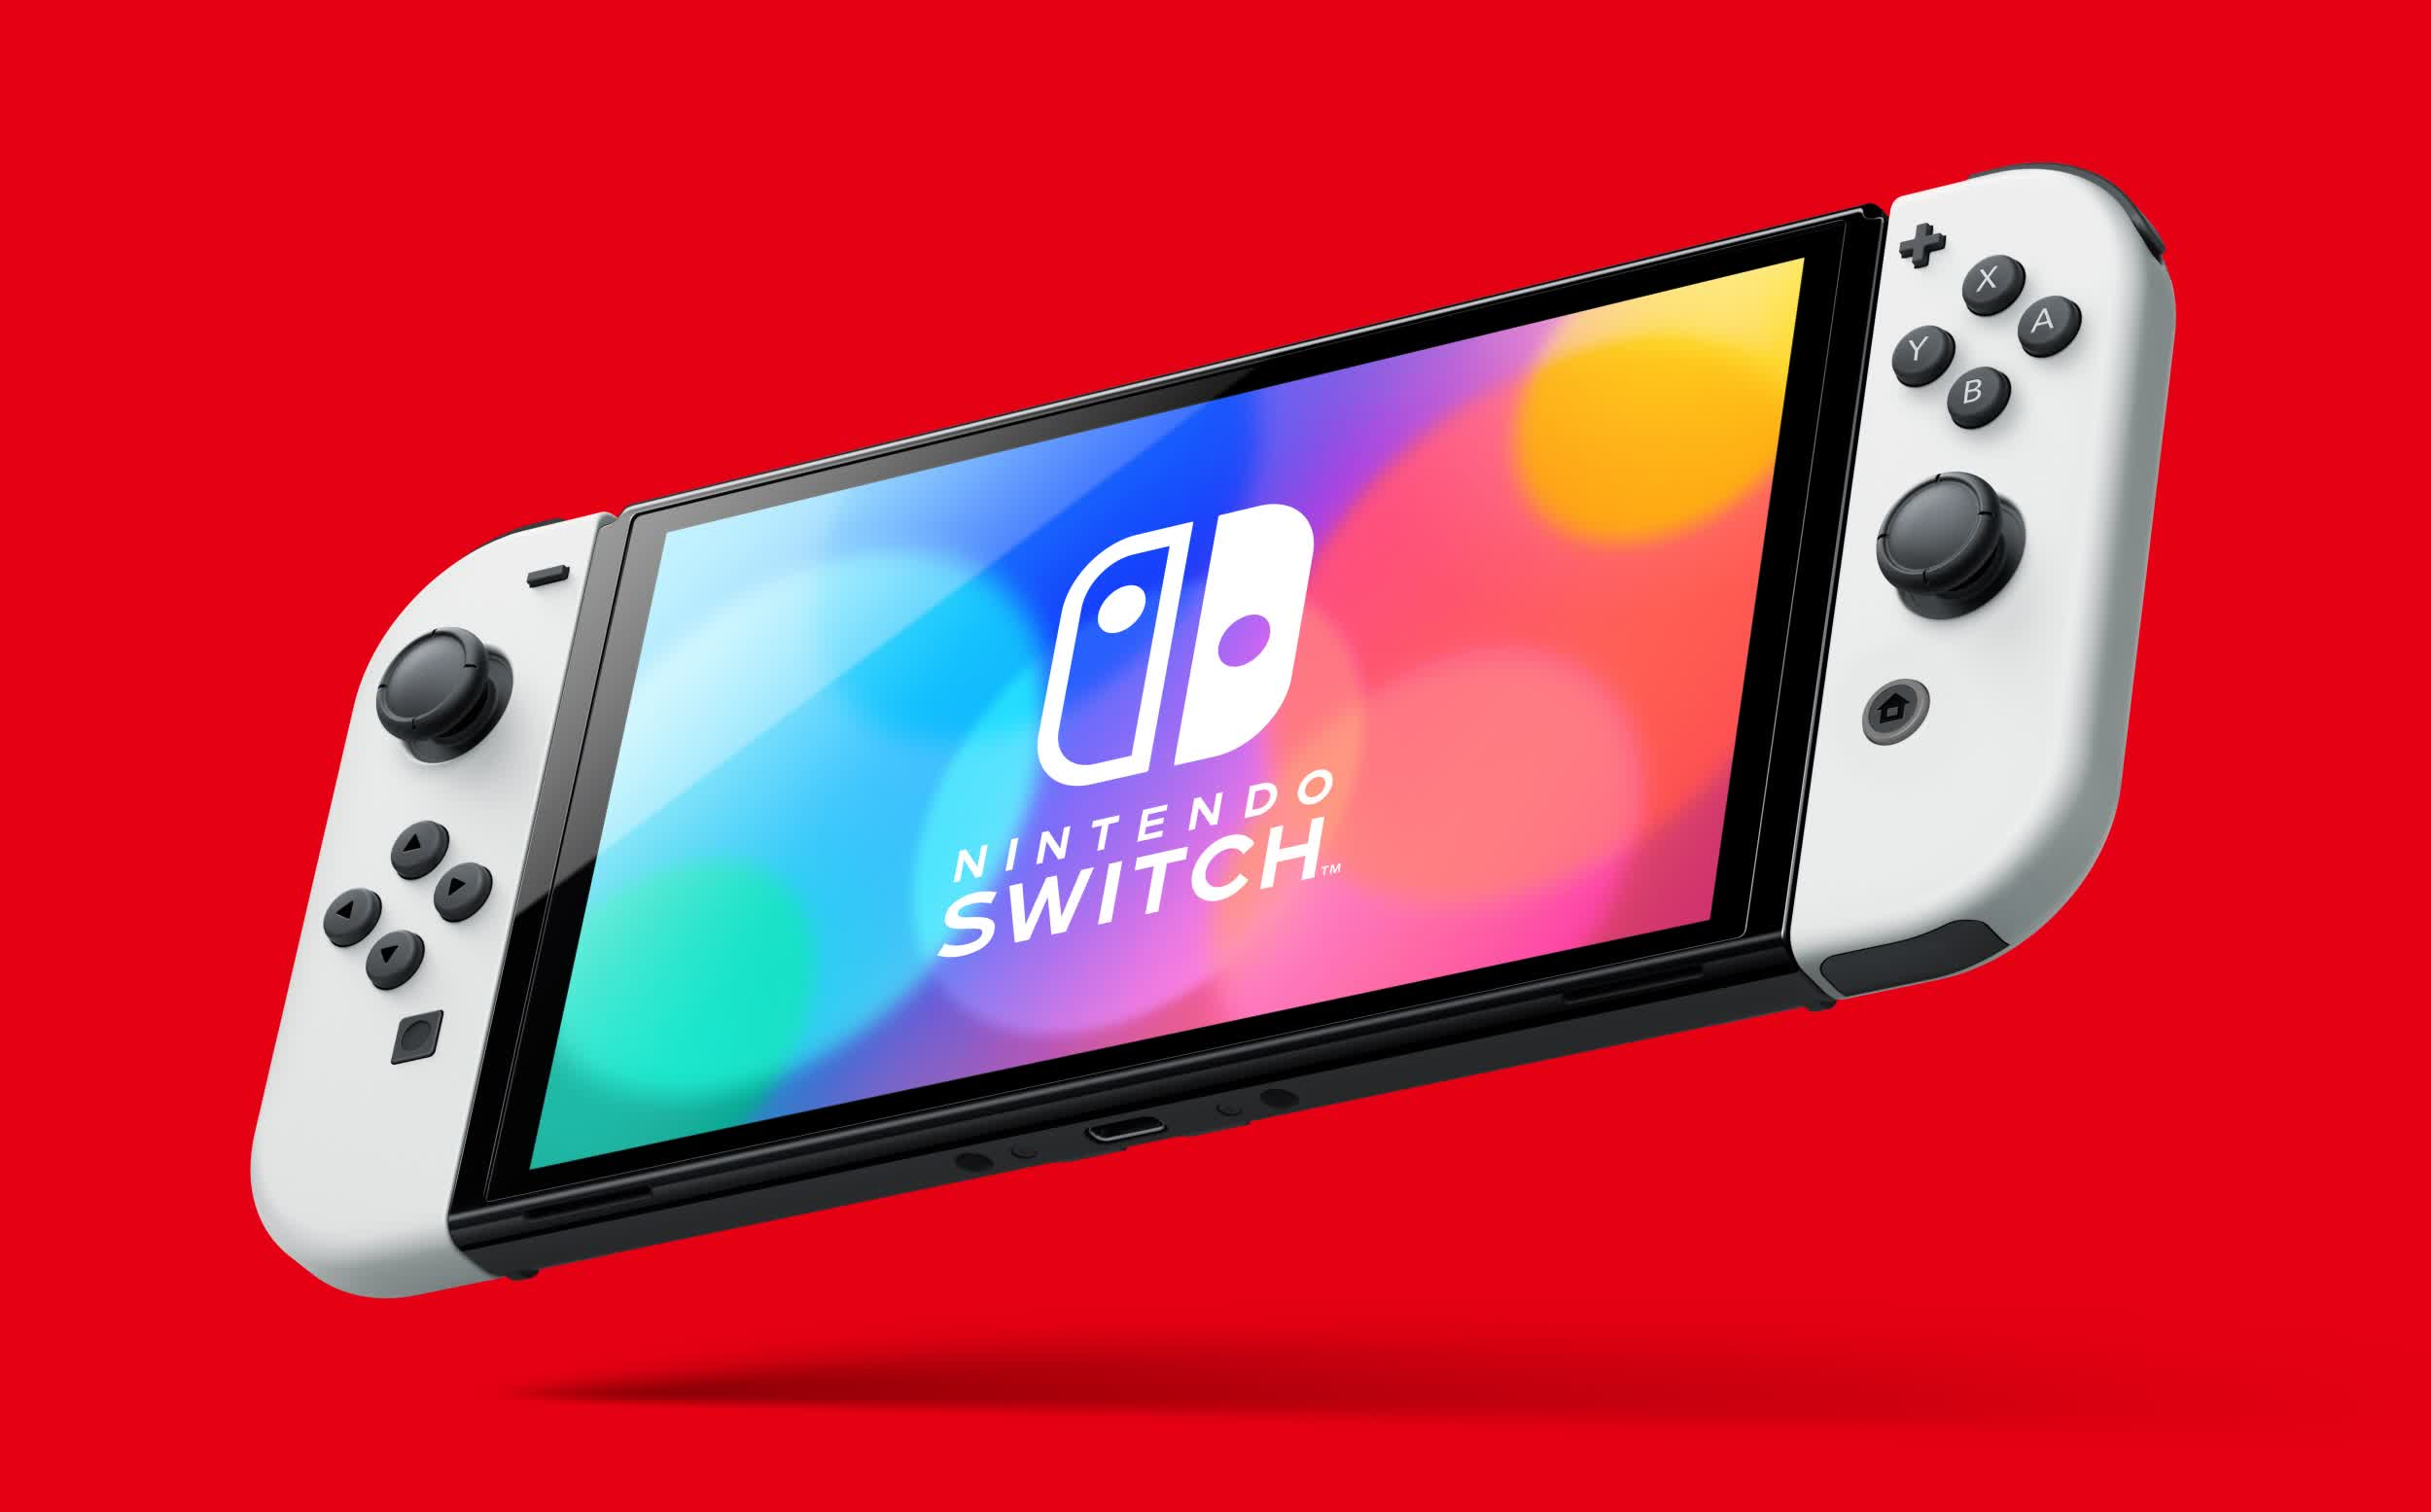 Nintendo Announces Updated Switch With Larger OLED Screen, 64GB Storage, Enhanced Audio, And More